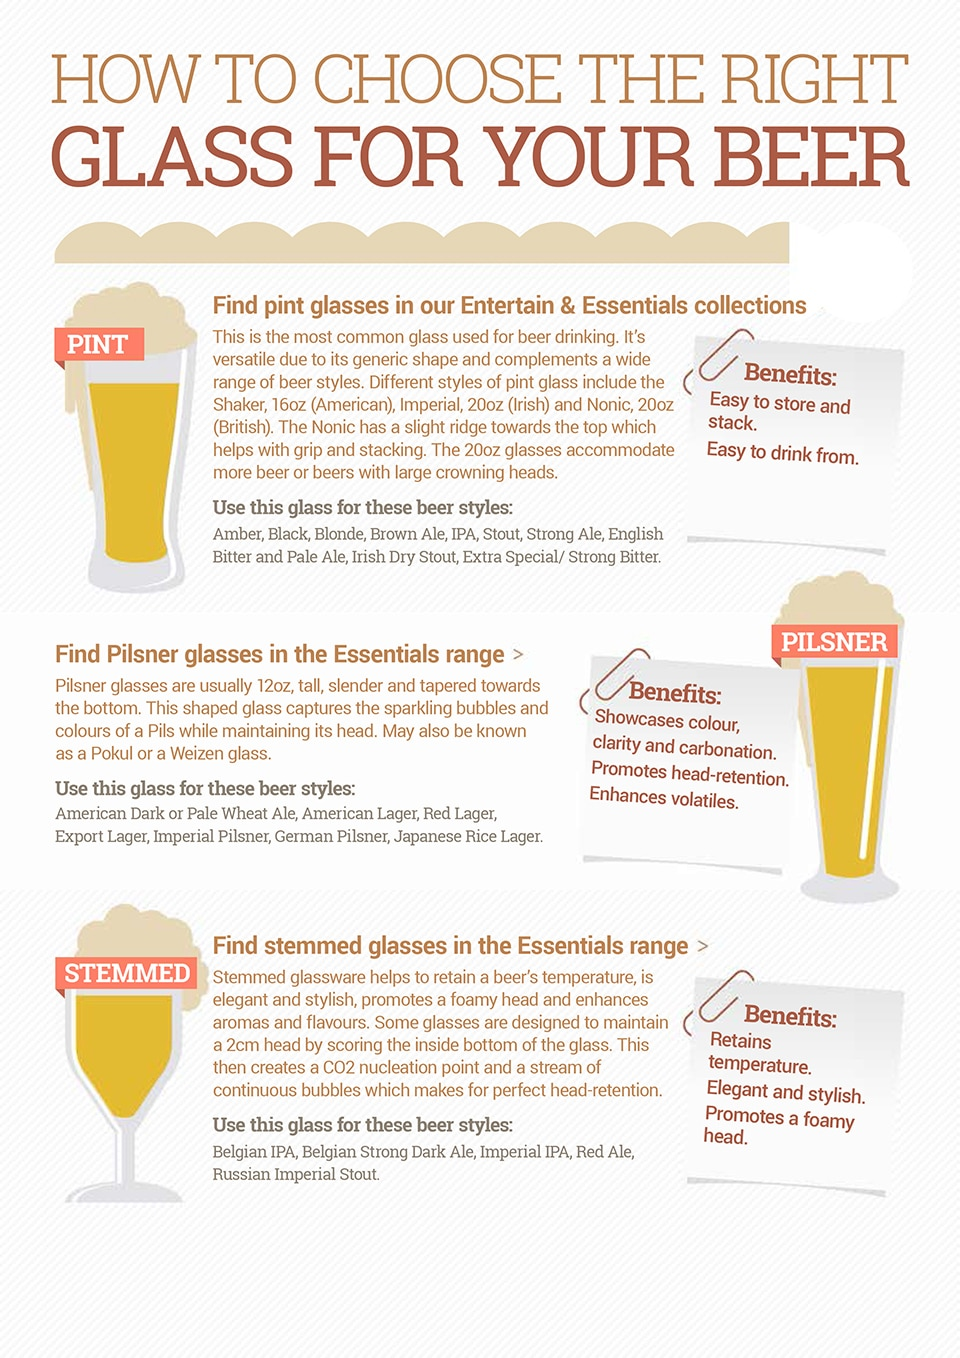 How to Choose the Right Glass for Your Beer